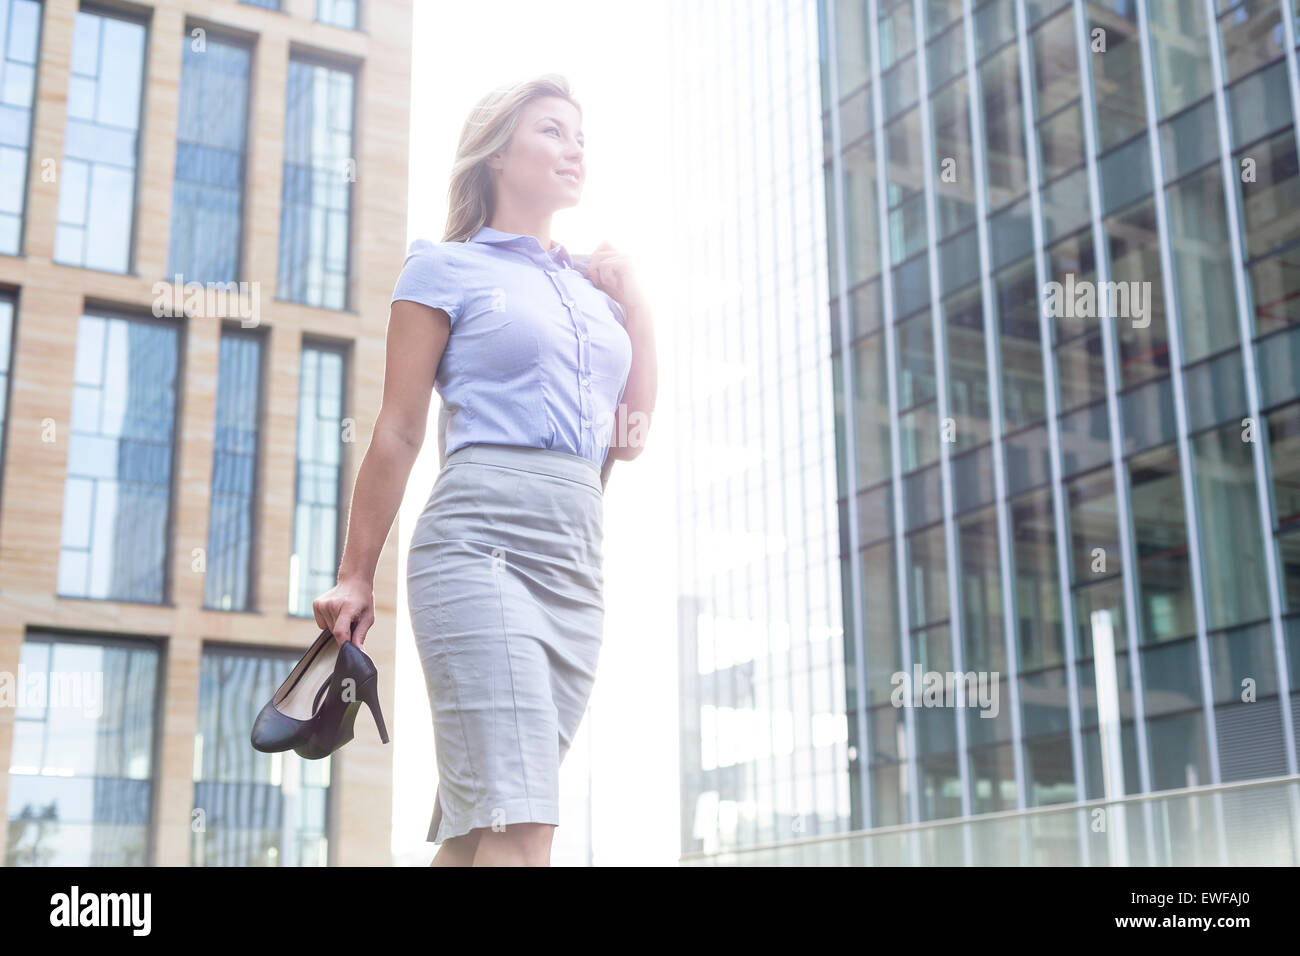 Low angle view of confident businesswoman holding high heels while standing outside office buildings - Stock Image